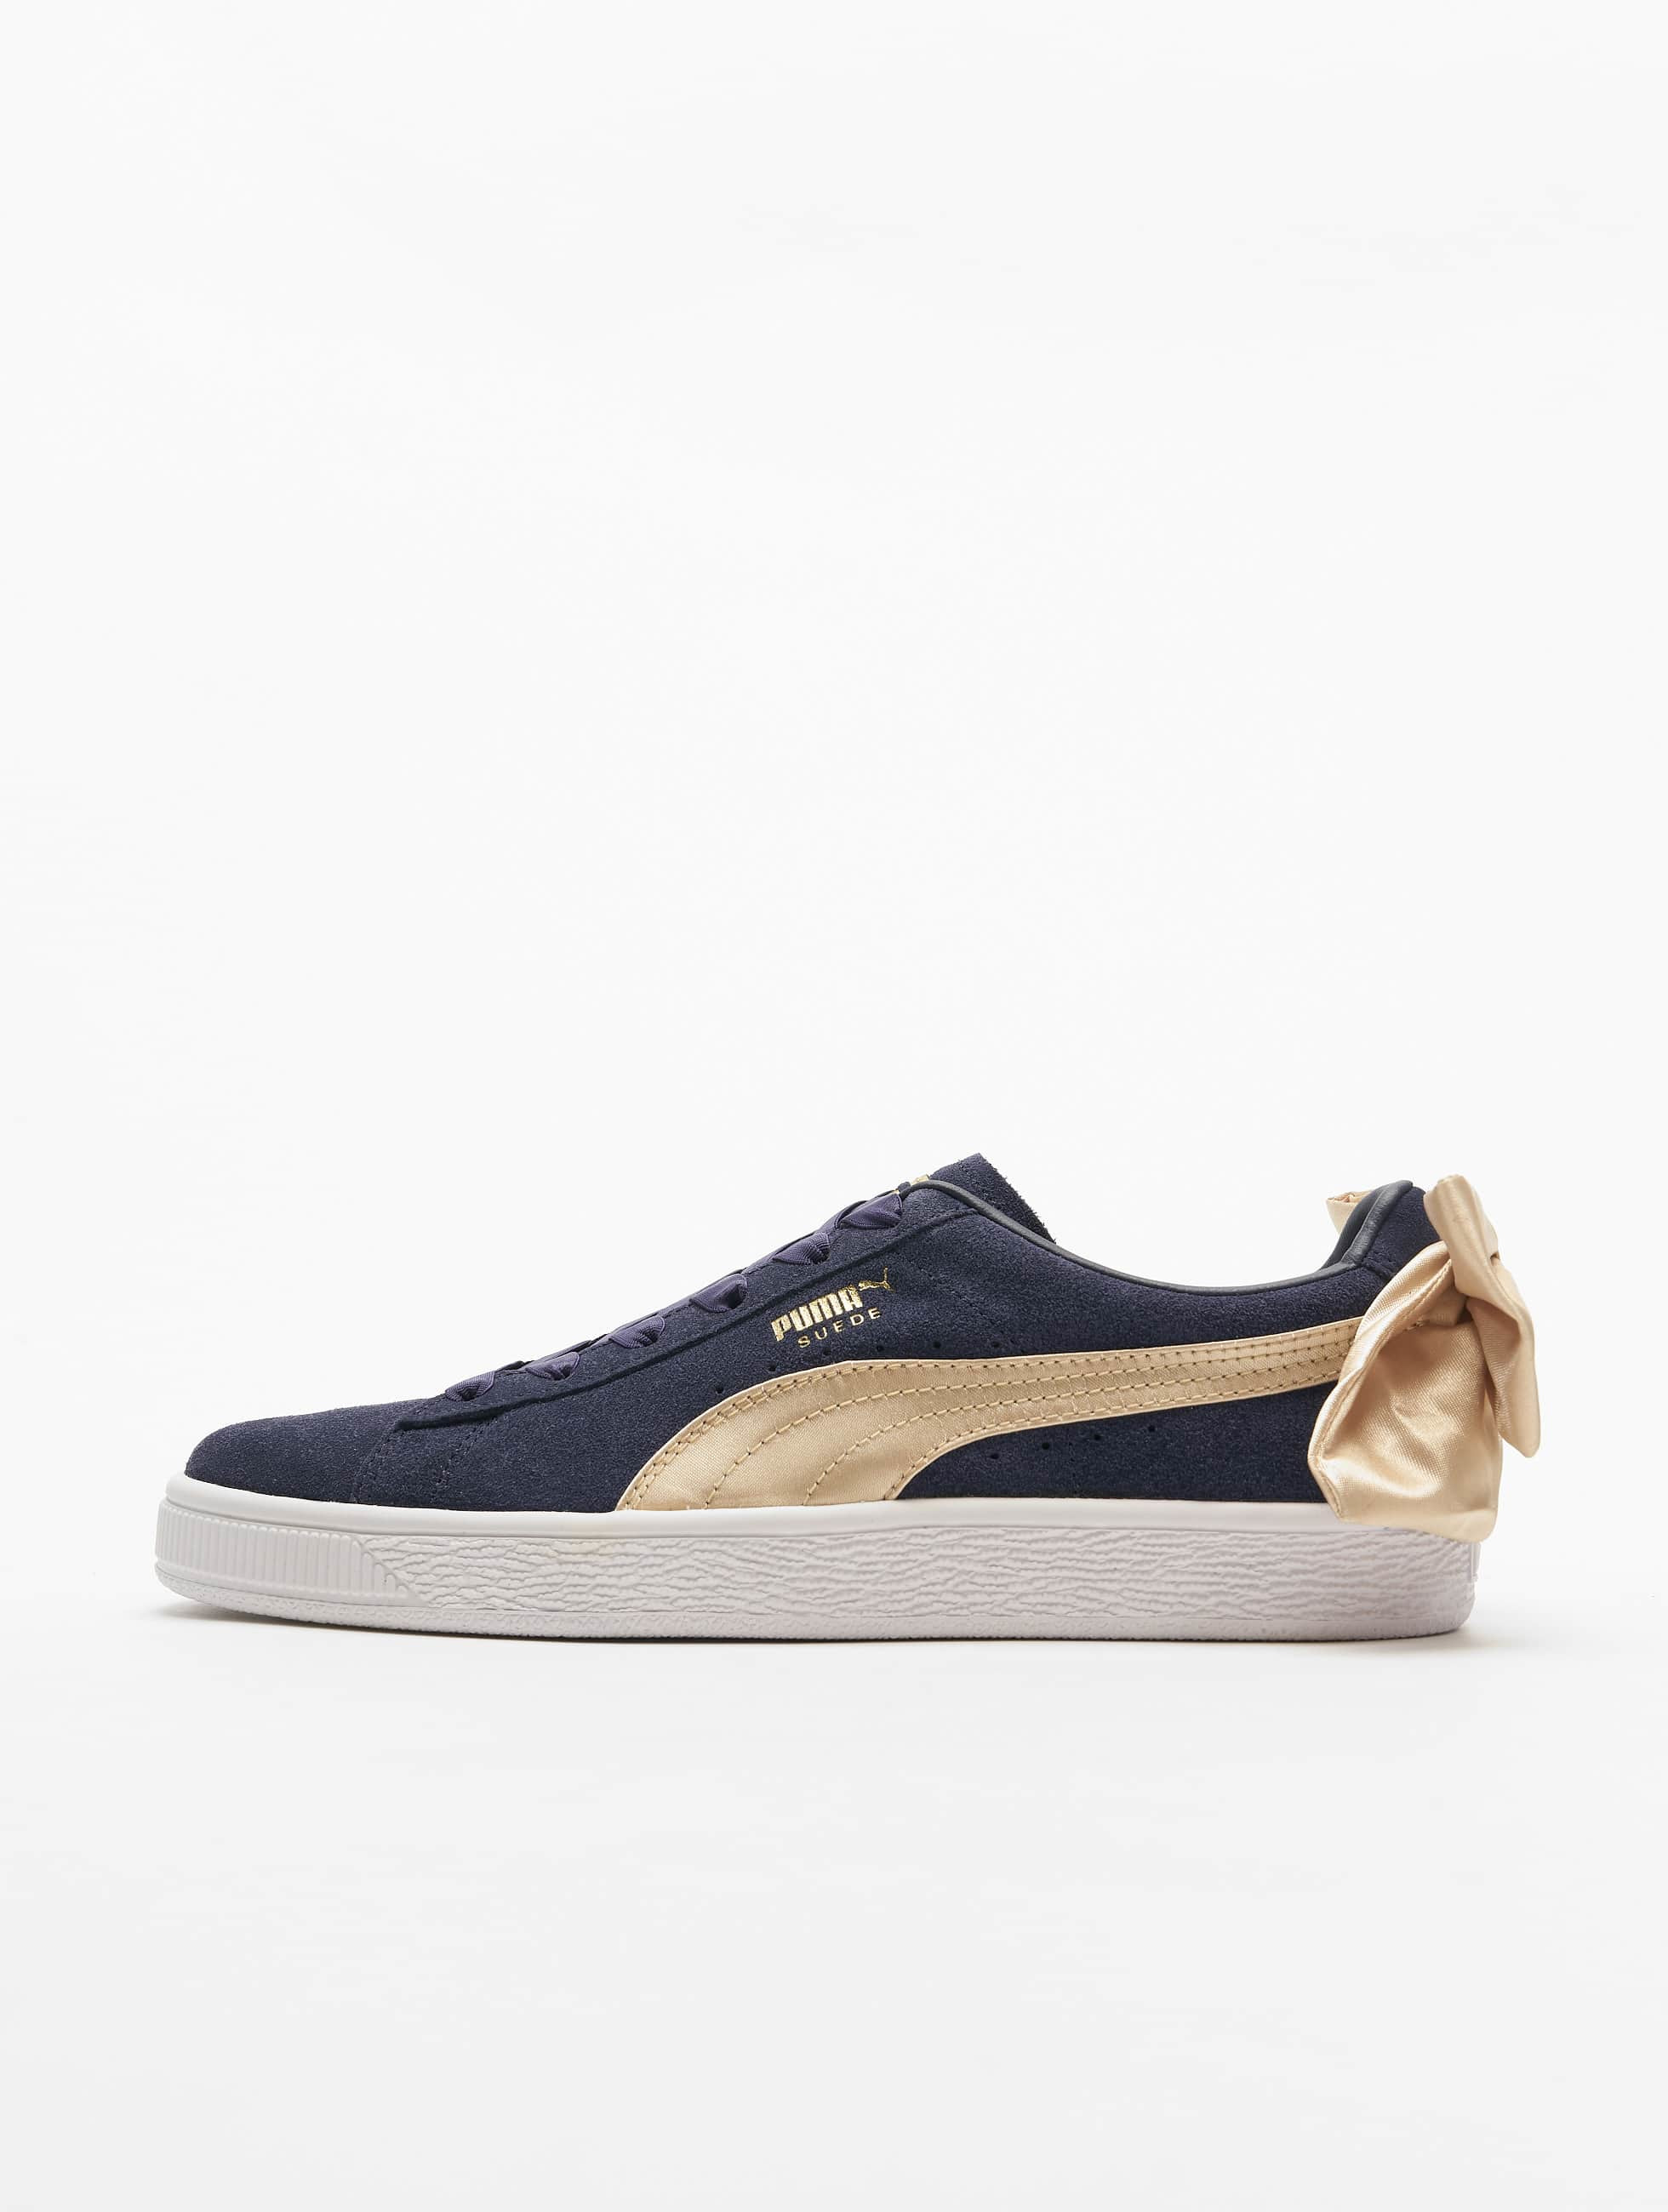 magasin en ligne 5e97d 3e2a7 Puma Suede Bow Varsity Sneakers Peacoat/Metallic Golden